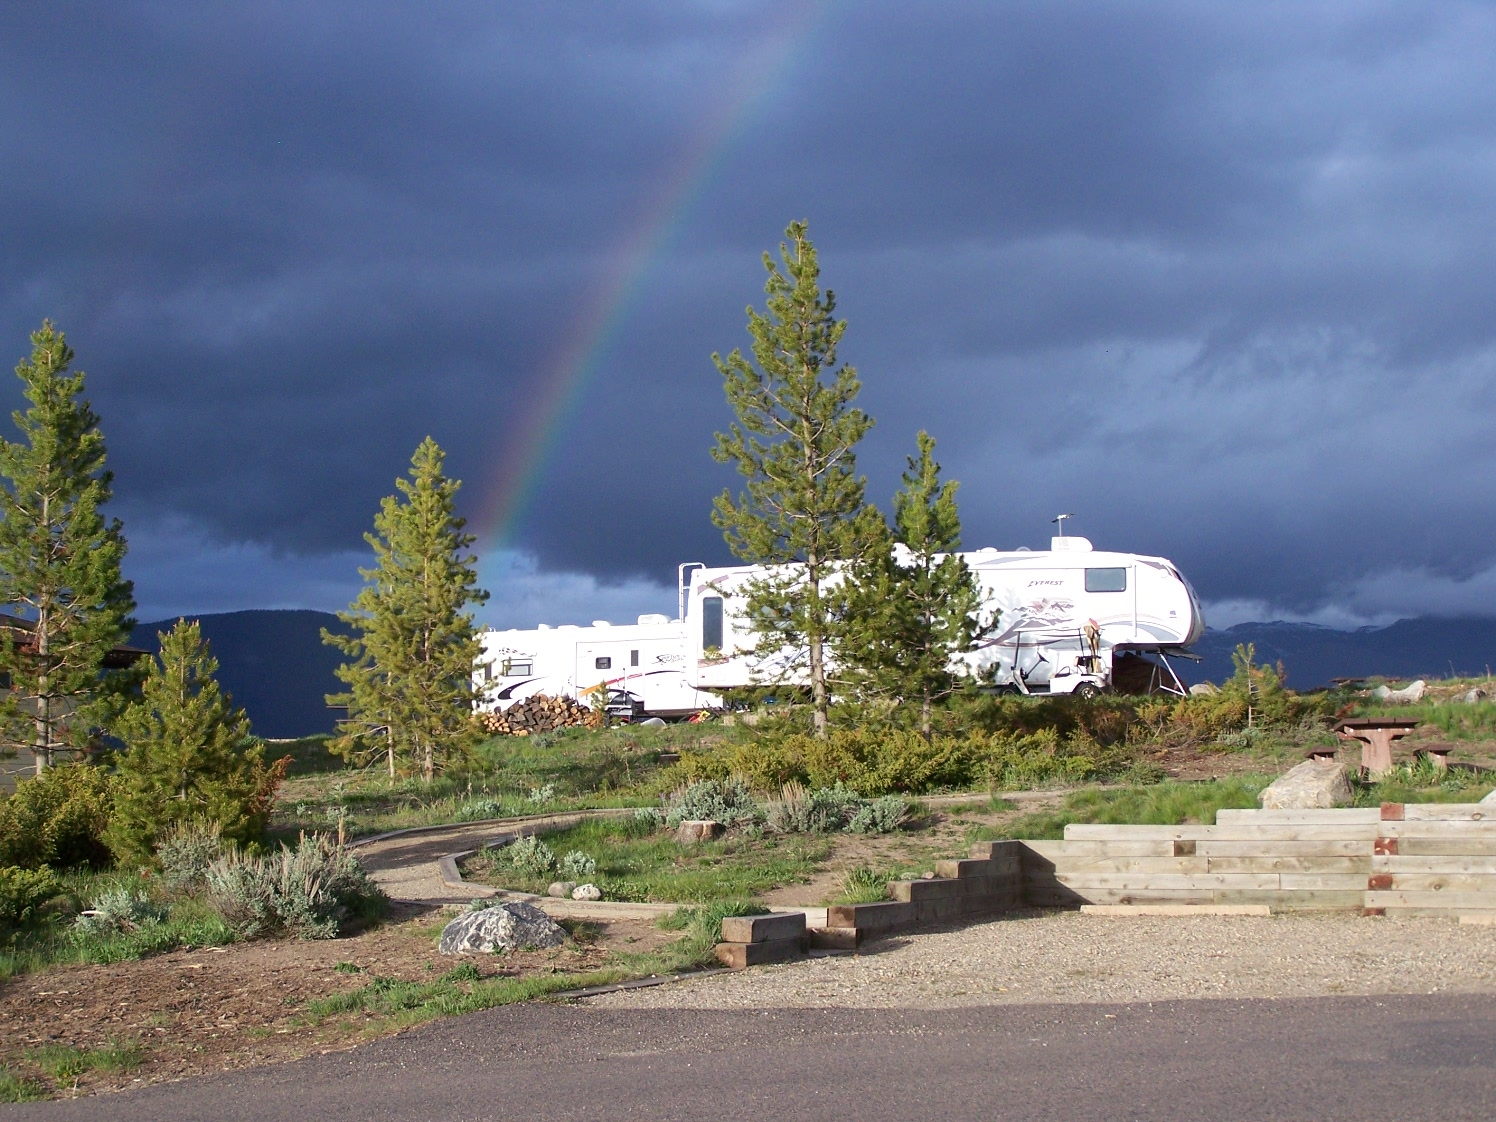 Rainbow over white trailer in Stillwater campsite.